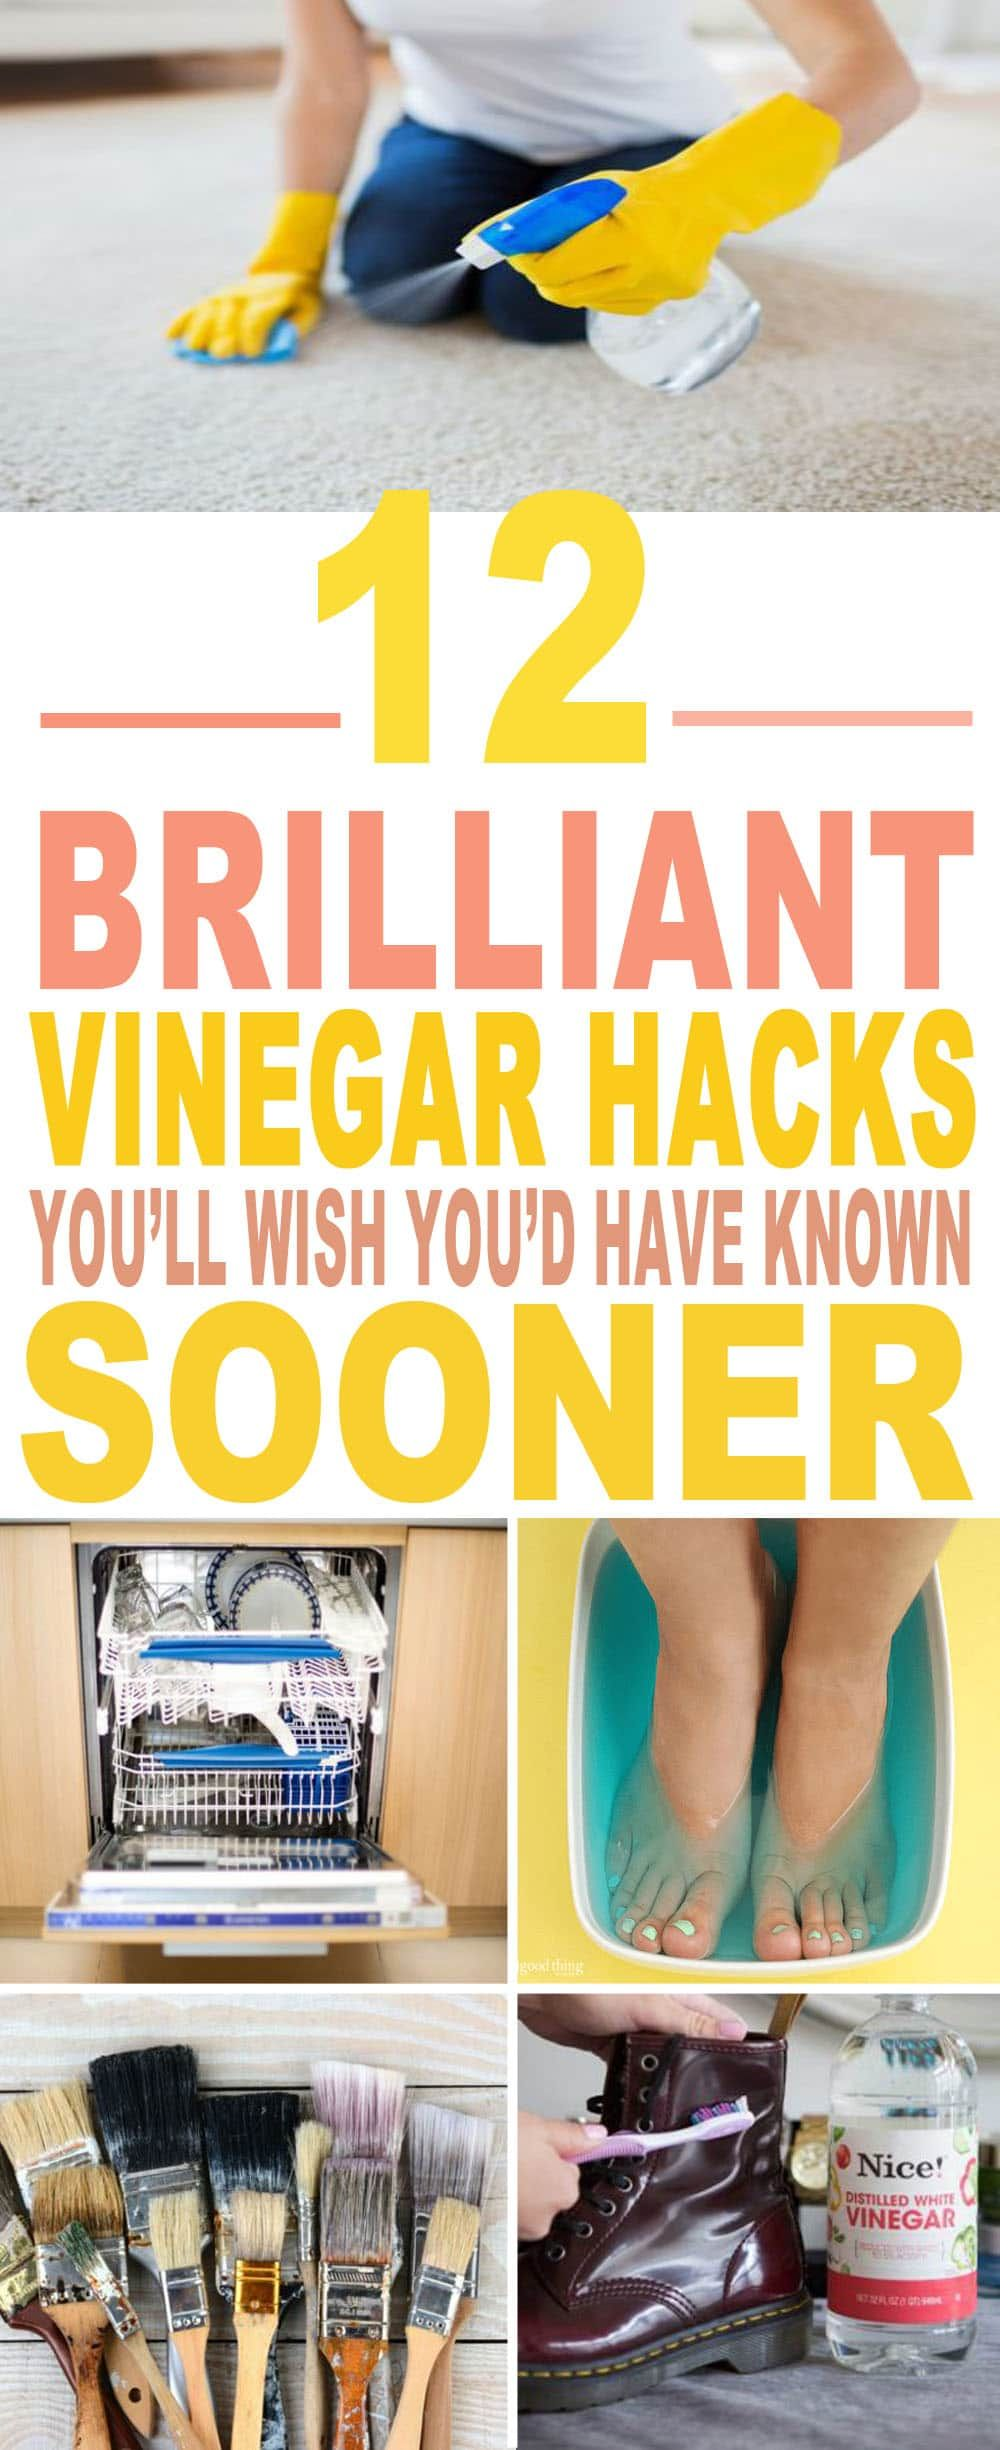 Brilliant Vinegar Hacks That Youll Wish Youd Known Sooner These Are The